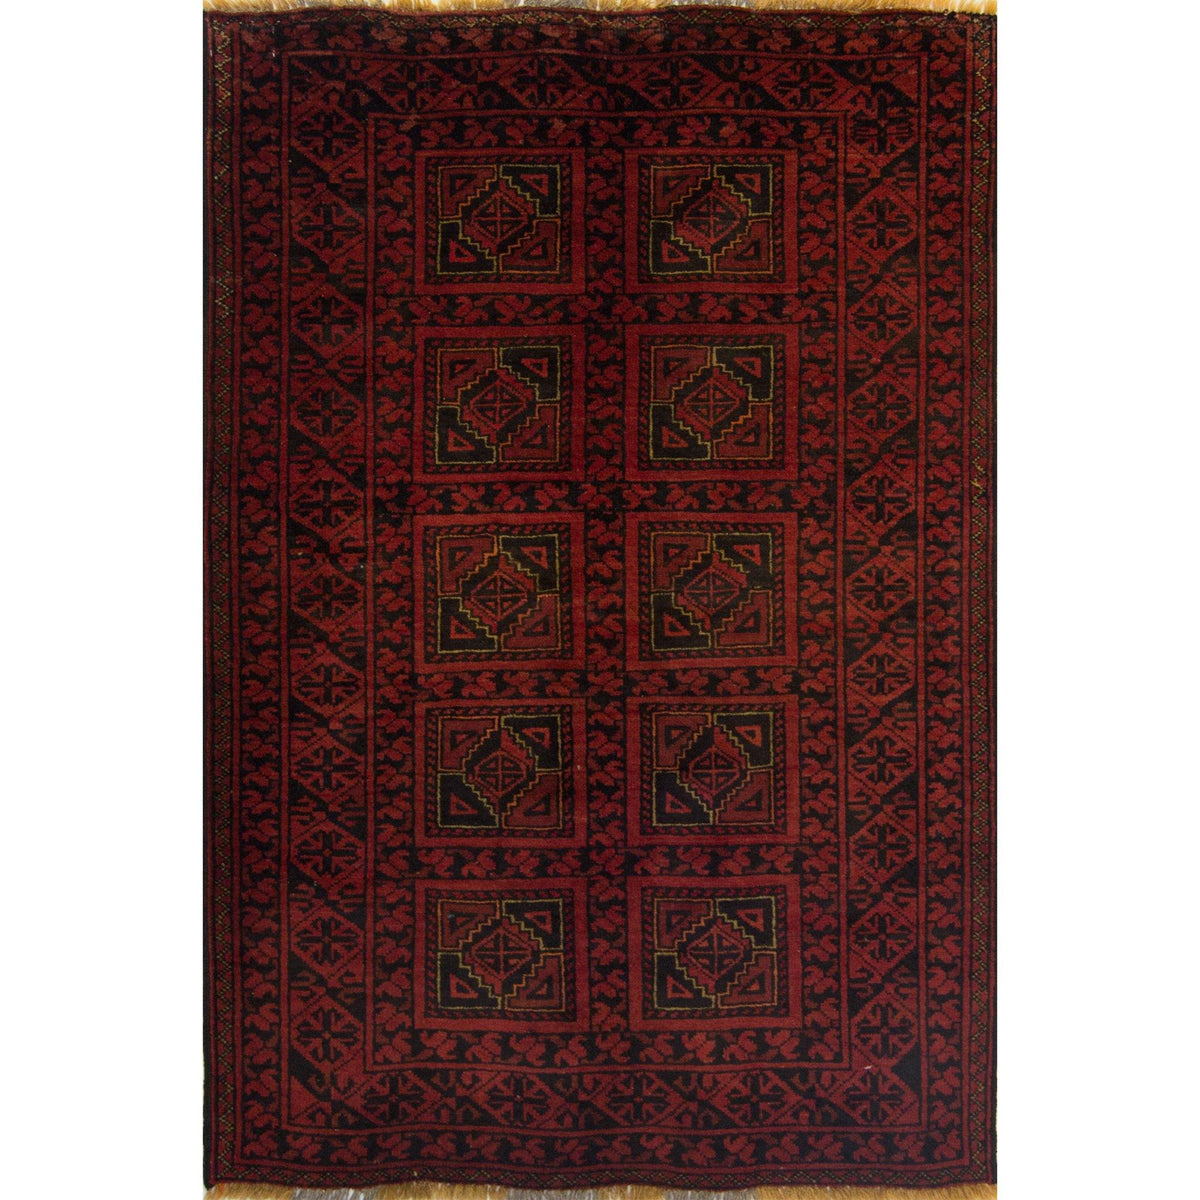 Fine Hand-knotted 100% Wool Afghani Turkmen Rug 103cm x 161cm Persian-Rug | House-of-Haghi | NewMarket | Auckland | NZ | Handmade Persian Rugs | Hand Knotted Persian Rugs